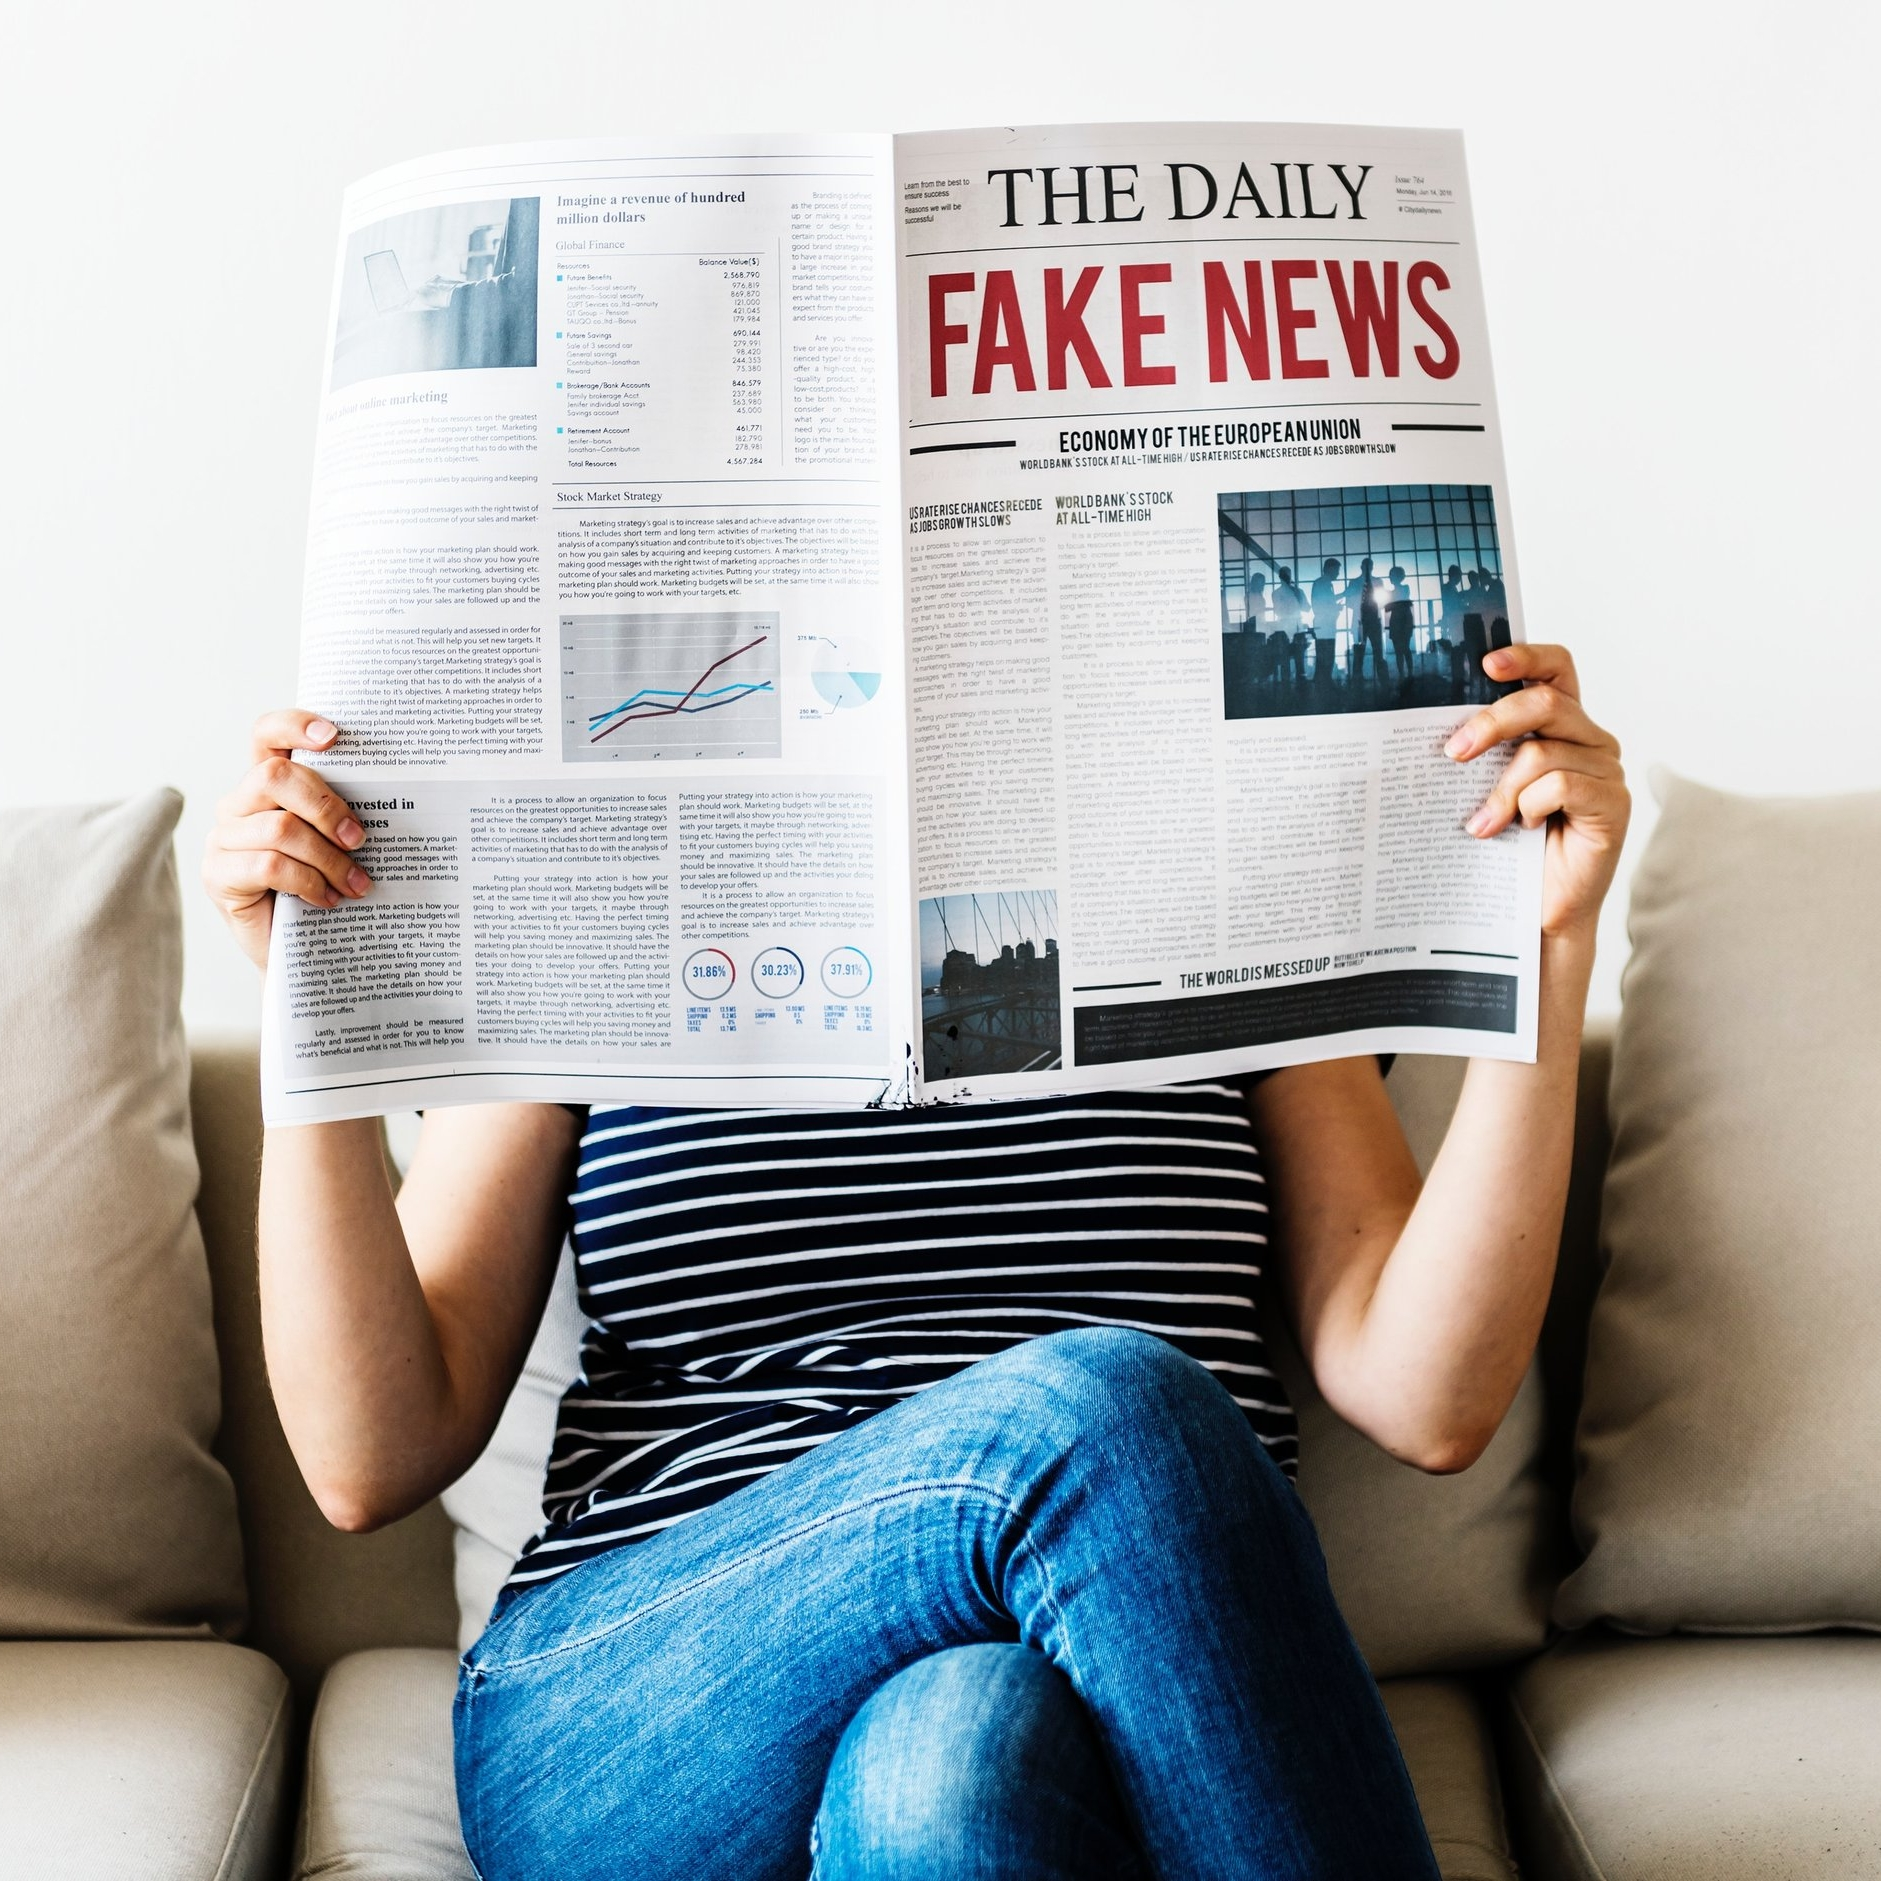 Unfortunately, it's not fake news. Read about current stories and instigate discussions on social media or in your community that protect survivors.